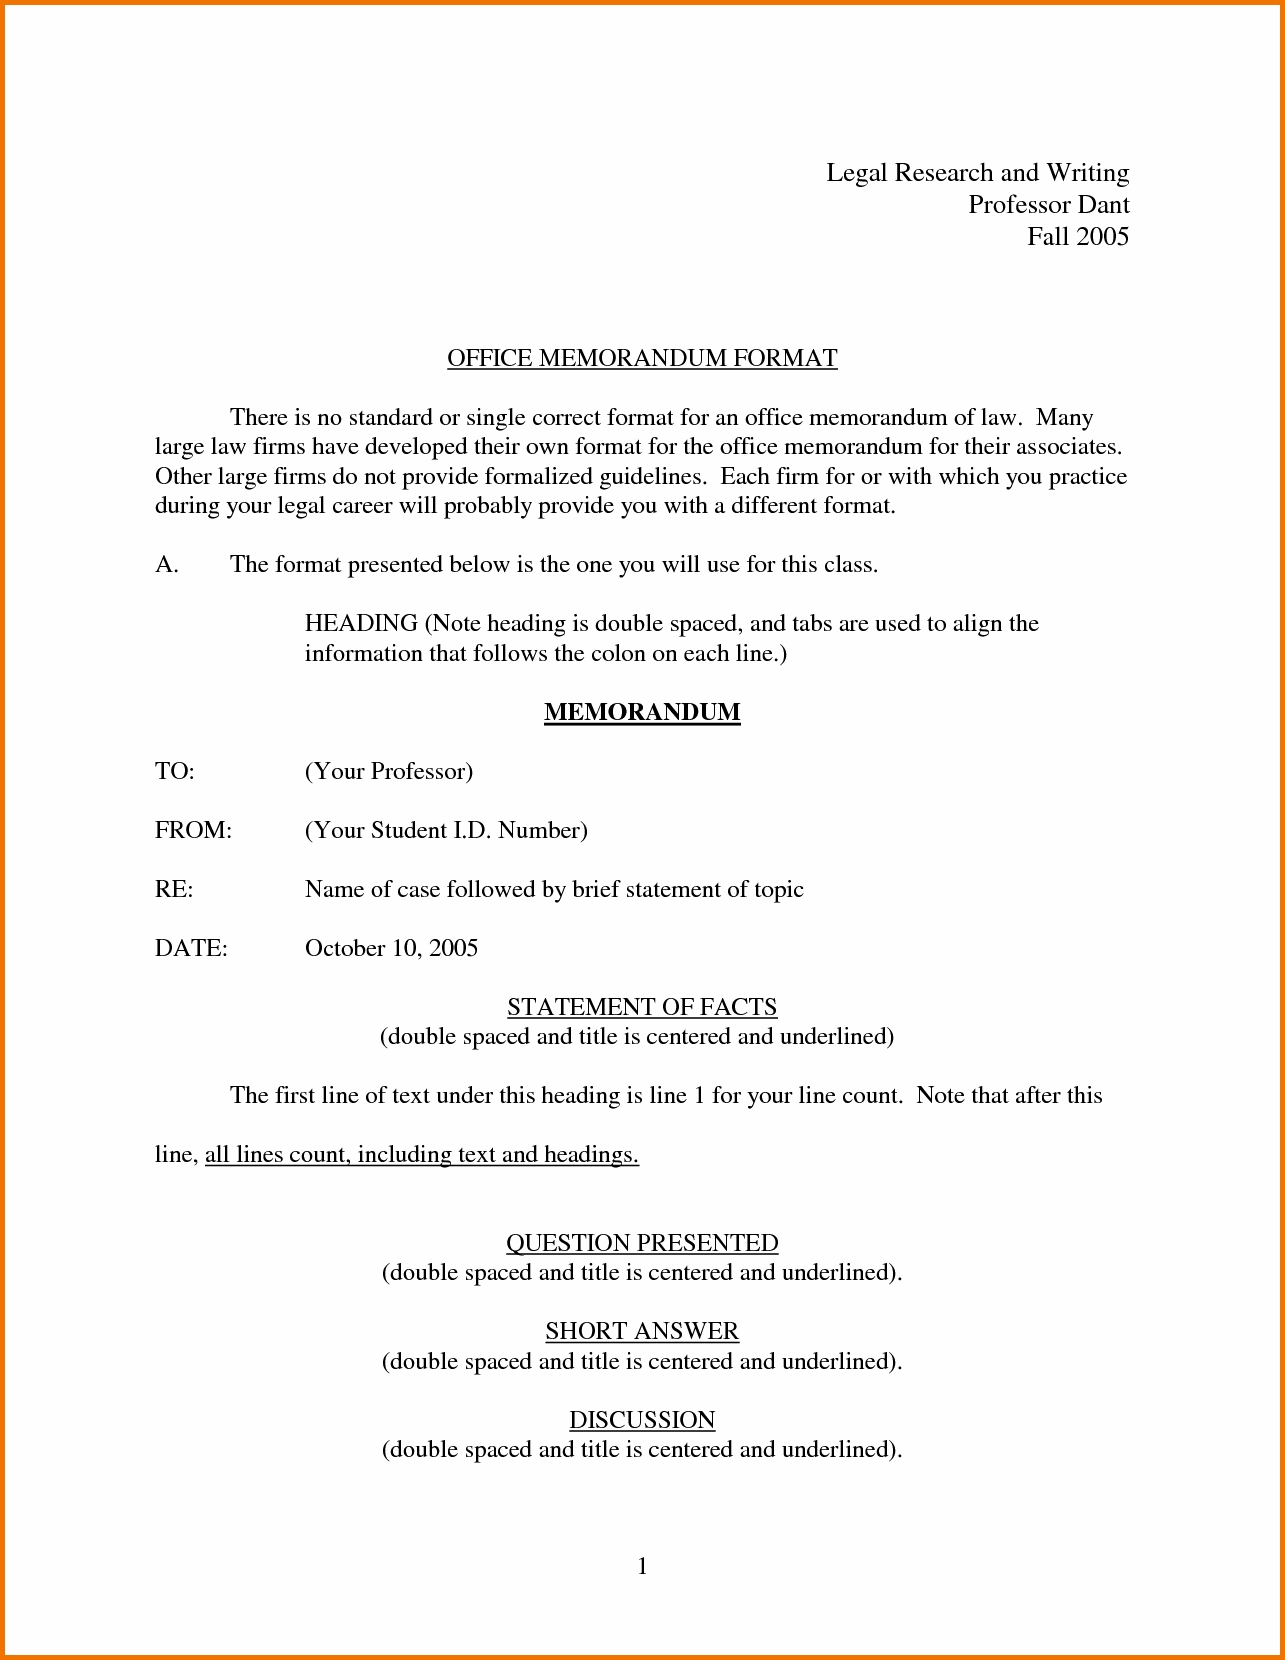 Simple Memo Template Interoffice Legal Competent Expense Report And Office Expense Report